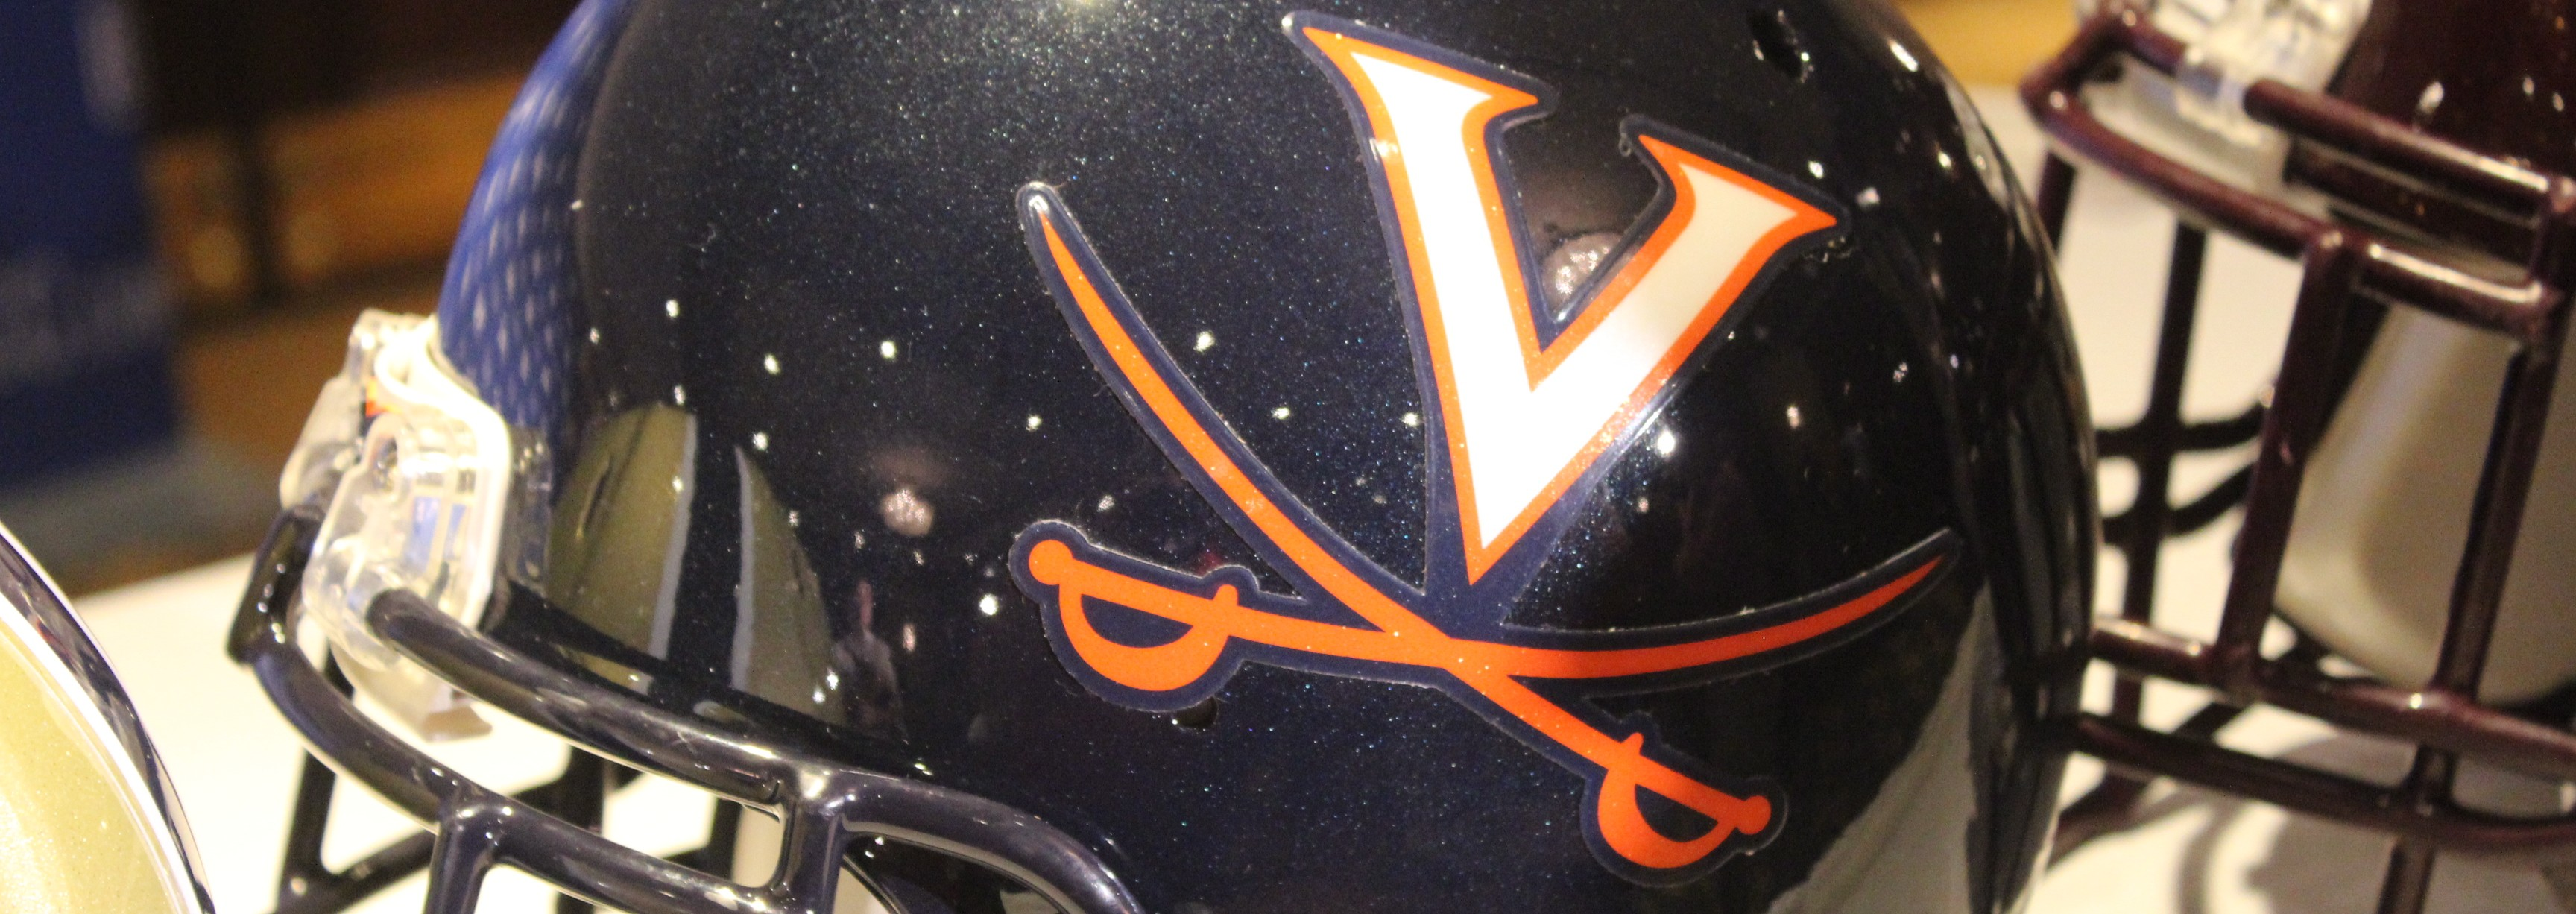 Virginia Helmet 2014 ACC Kickoff Photo by Mark Blankenbaker Fitted